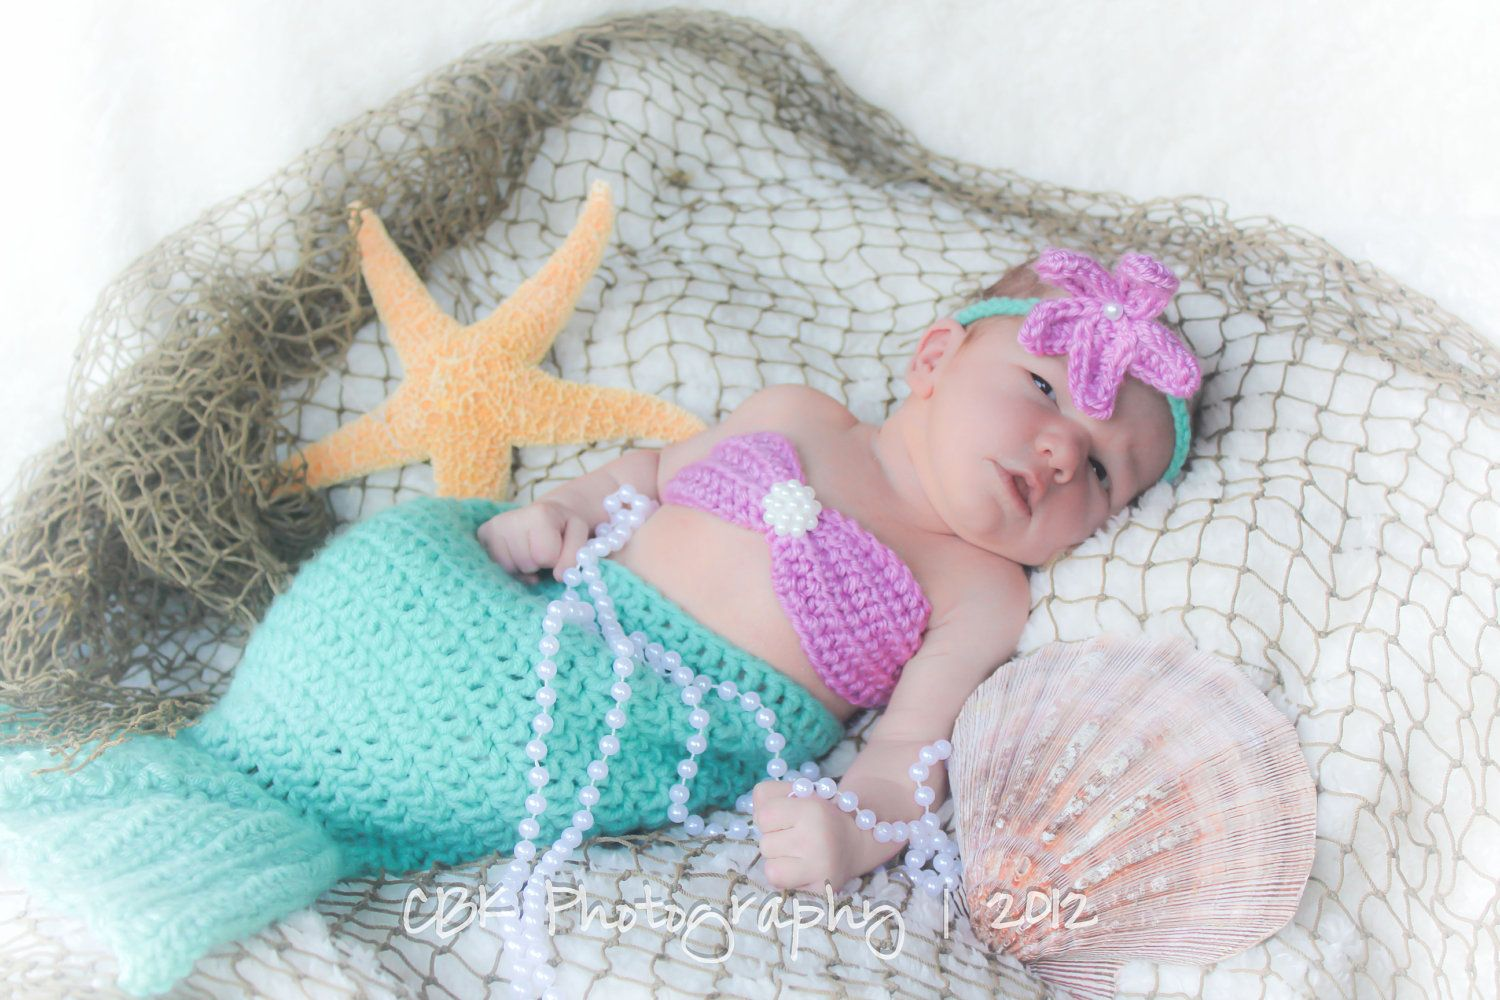 Crochet Pattern For Baby Mermaid Tail : Baby Photo Idea: Crocheted Baby Mermaid Outfit Mermaid ...